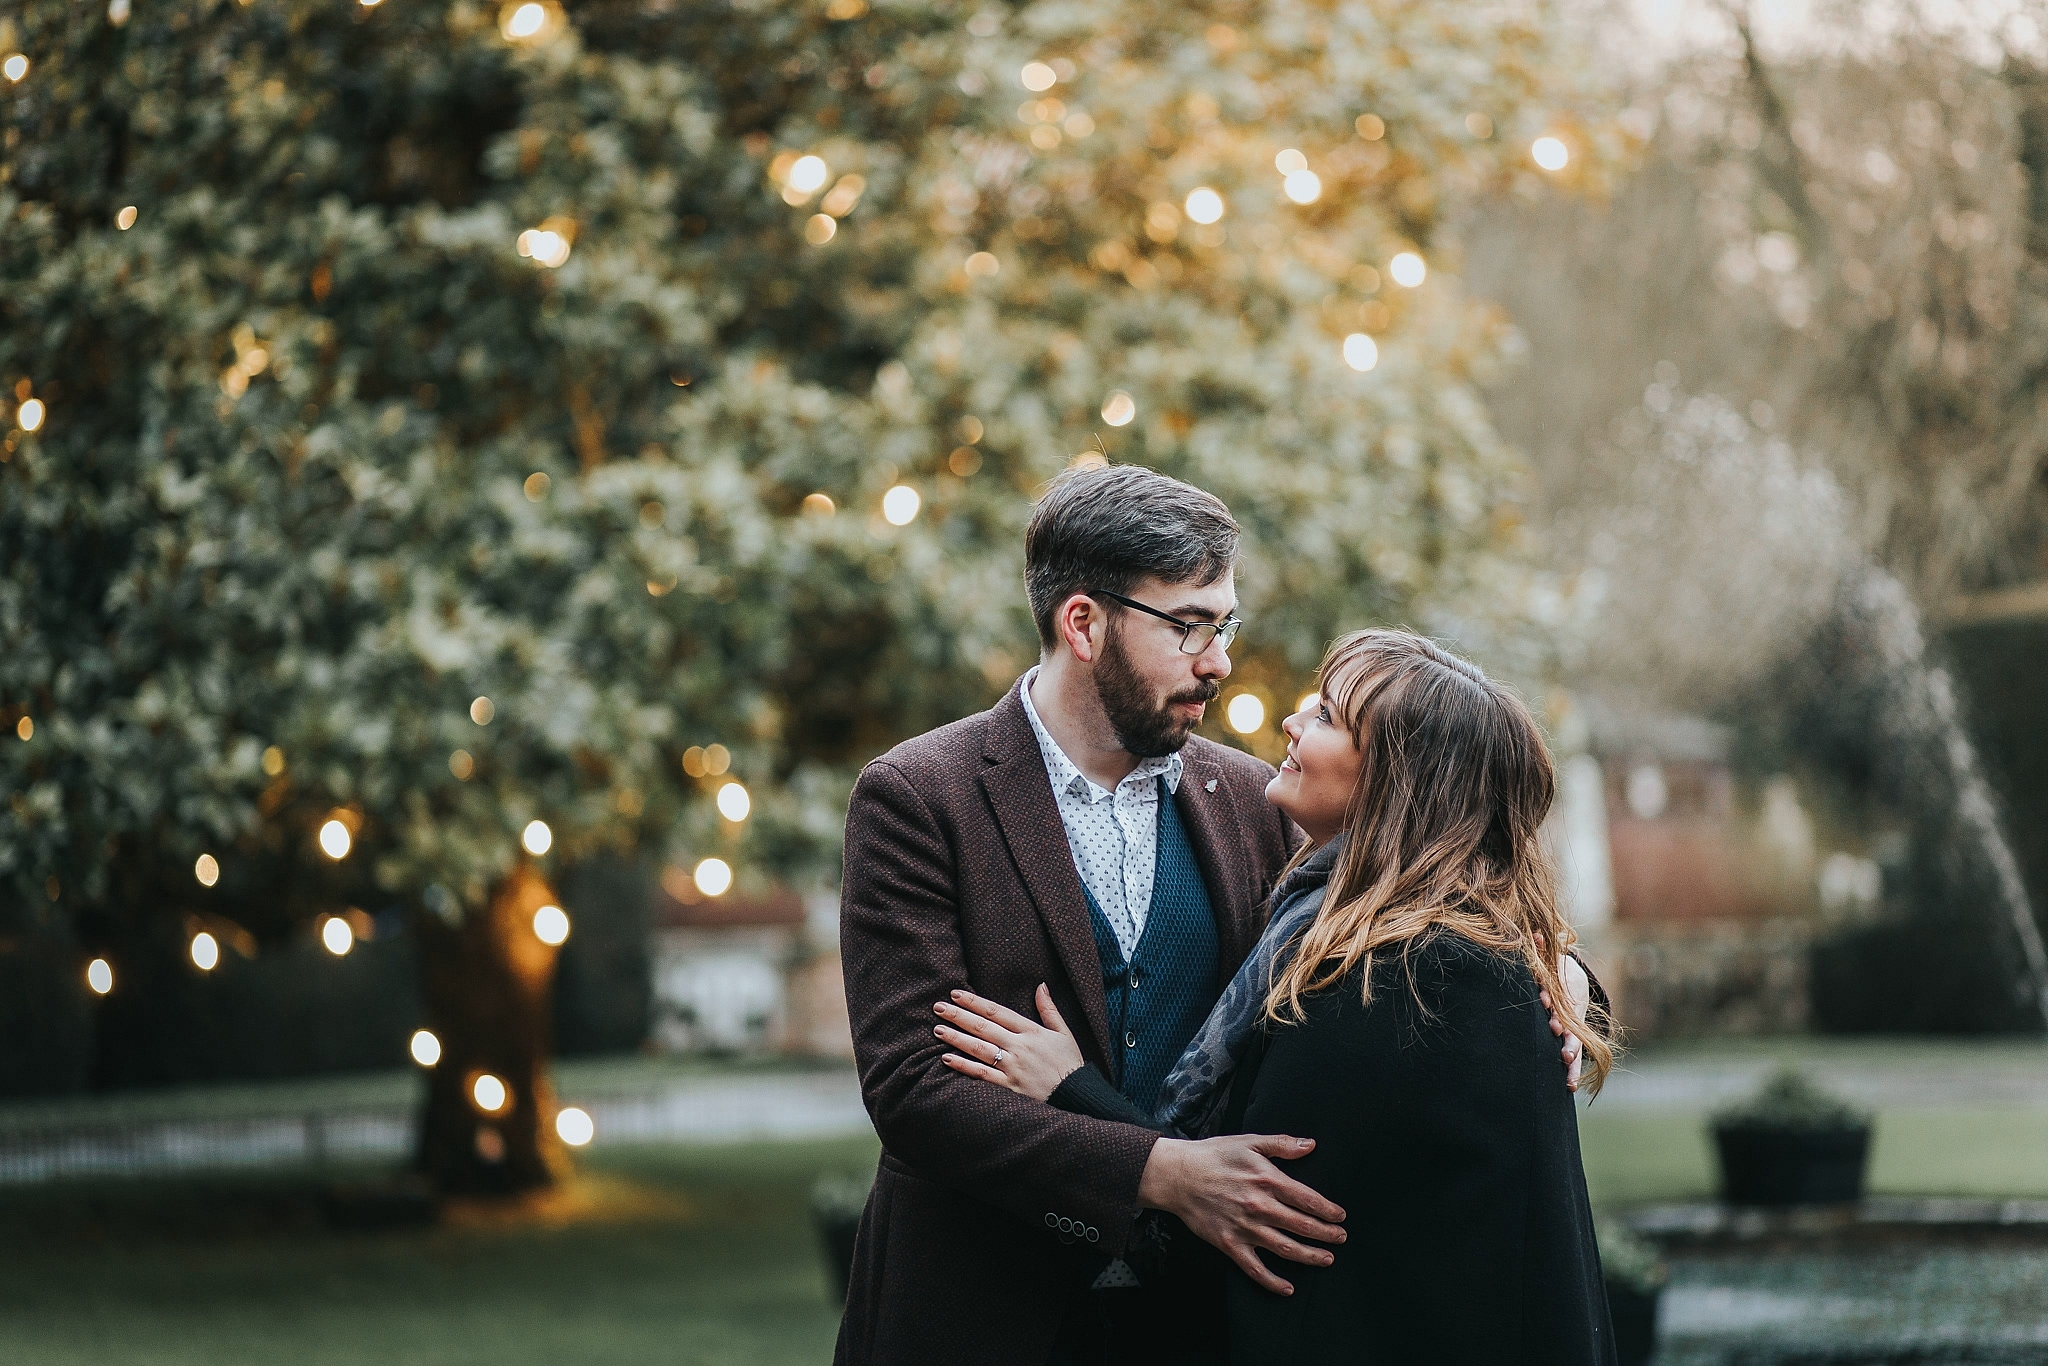 Port Lympne Photography engagement photographer kent Emily Crutcher 32